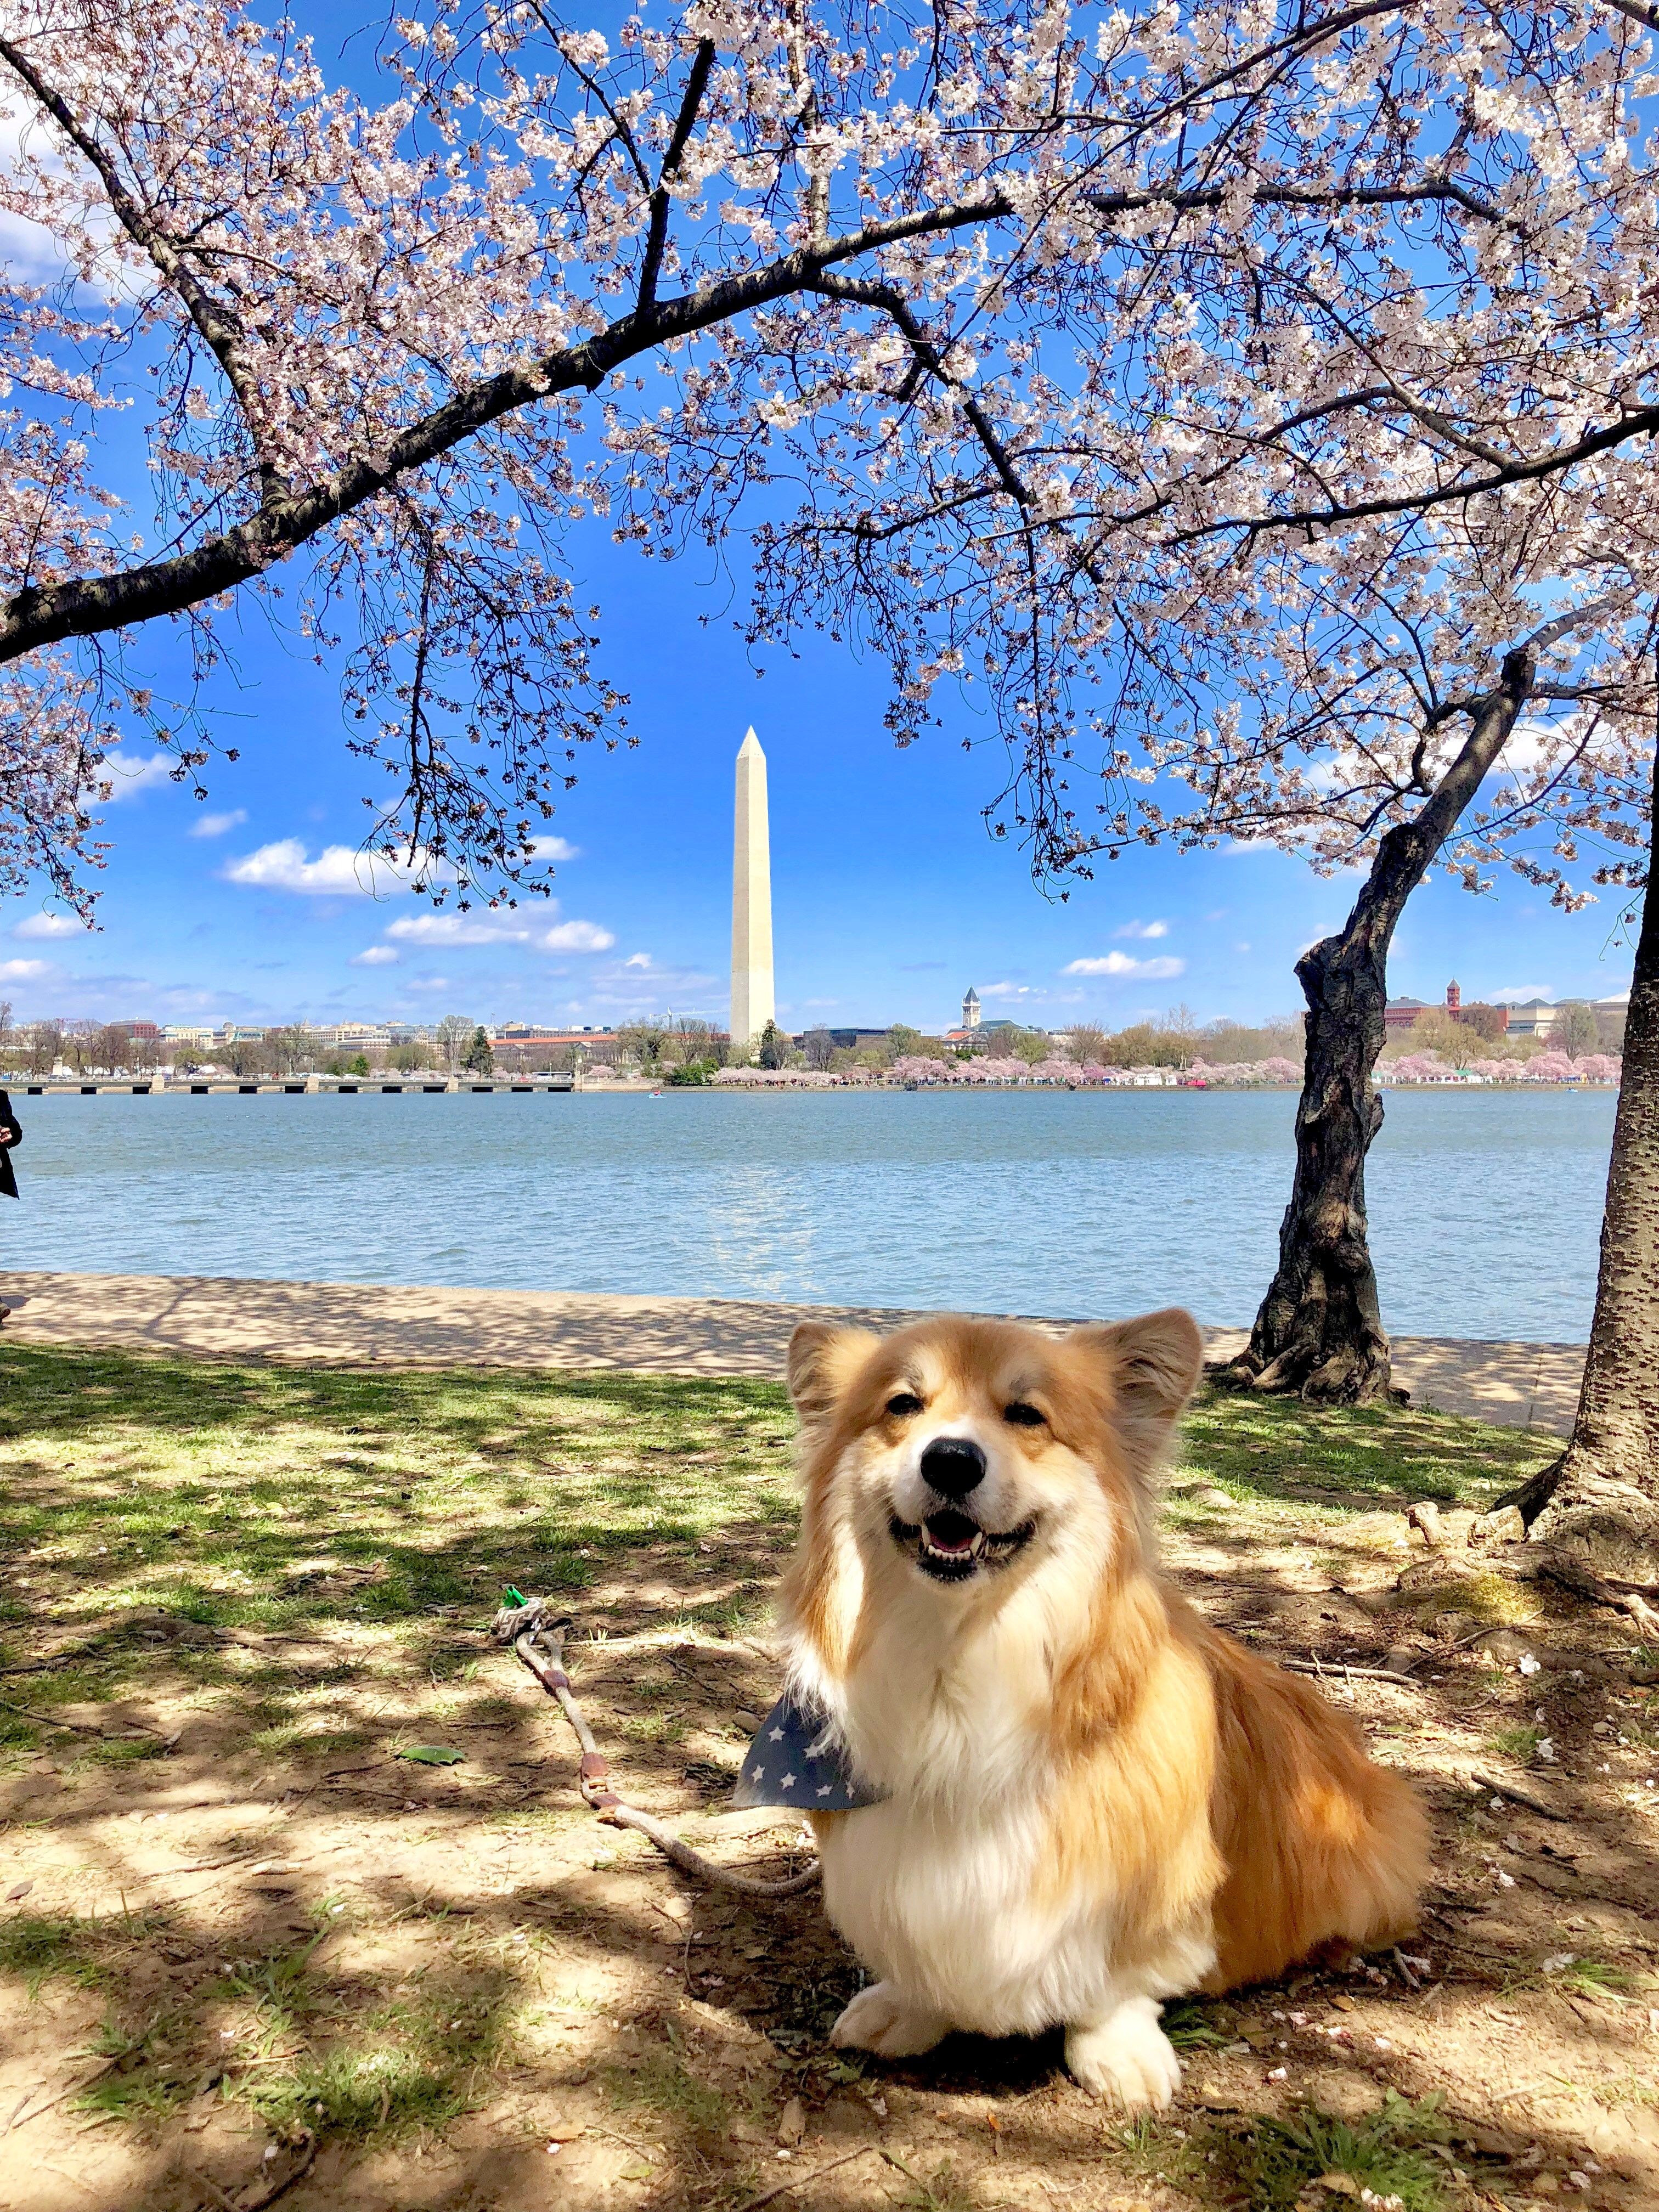 In honor of National Pet Day (which is basically like Christmas around here!) we checked in on a few of our favorite Instagram stars to see what they've been up to lately, and we noticed many of them had paid a visit to D.C.'s beloved blossoms. So for this week's special RUFFined Spotlight, we give you some adorable four-legged admirers of the cherry blossoms! (Image: via IG user @moogle_the_fluffy_corgi /{ }instagram.com/moogle_the_fluffy_corgi/){ }